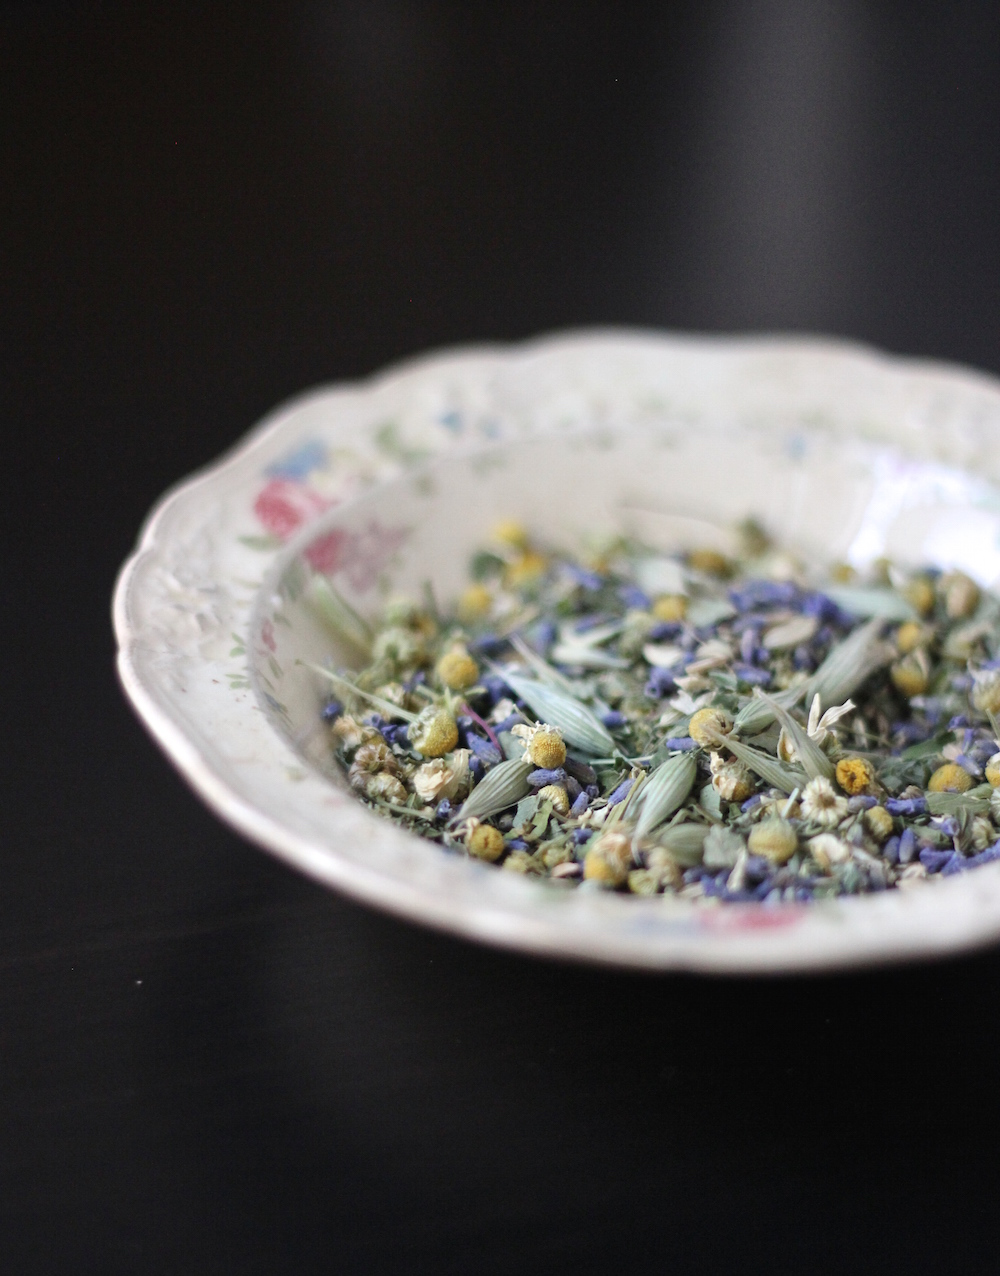 custom herbal tea blend